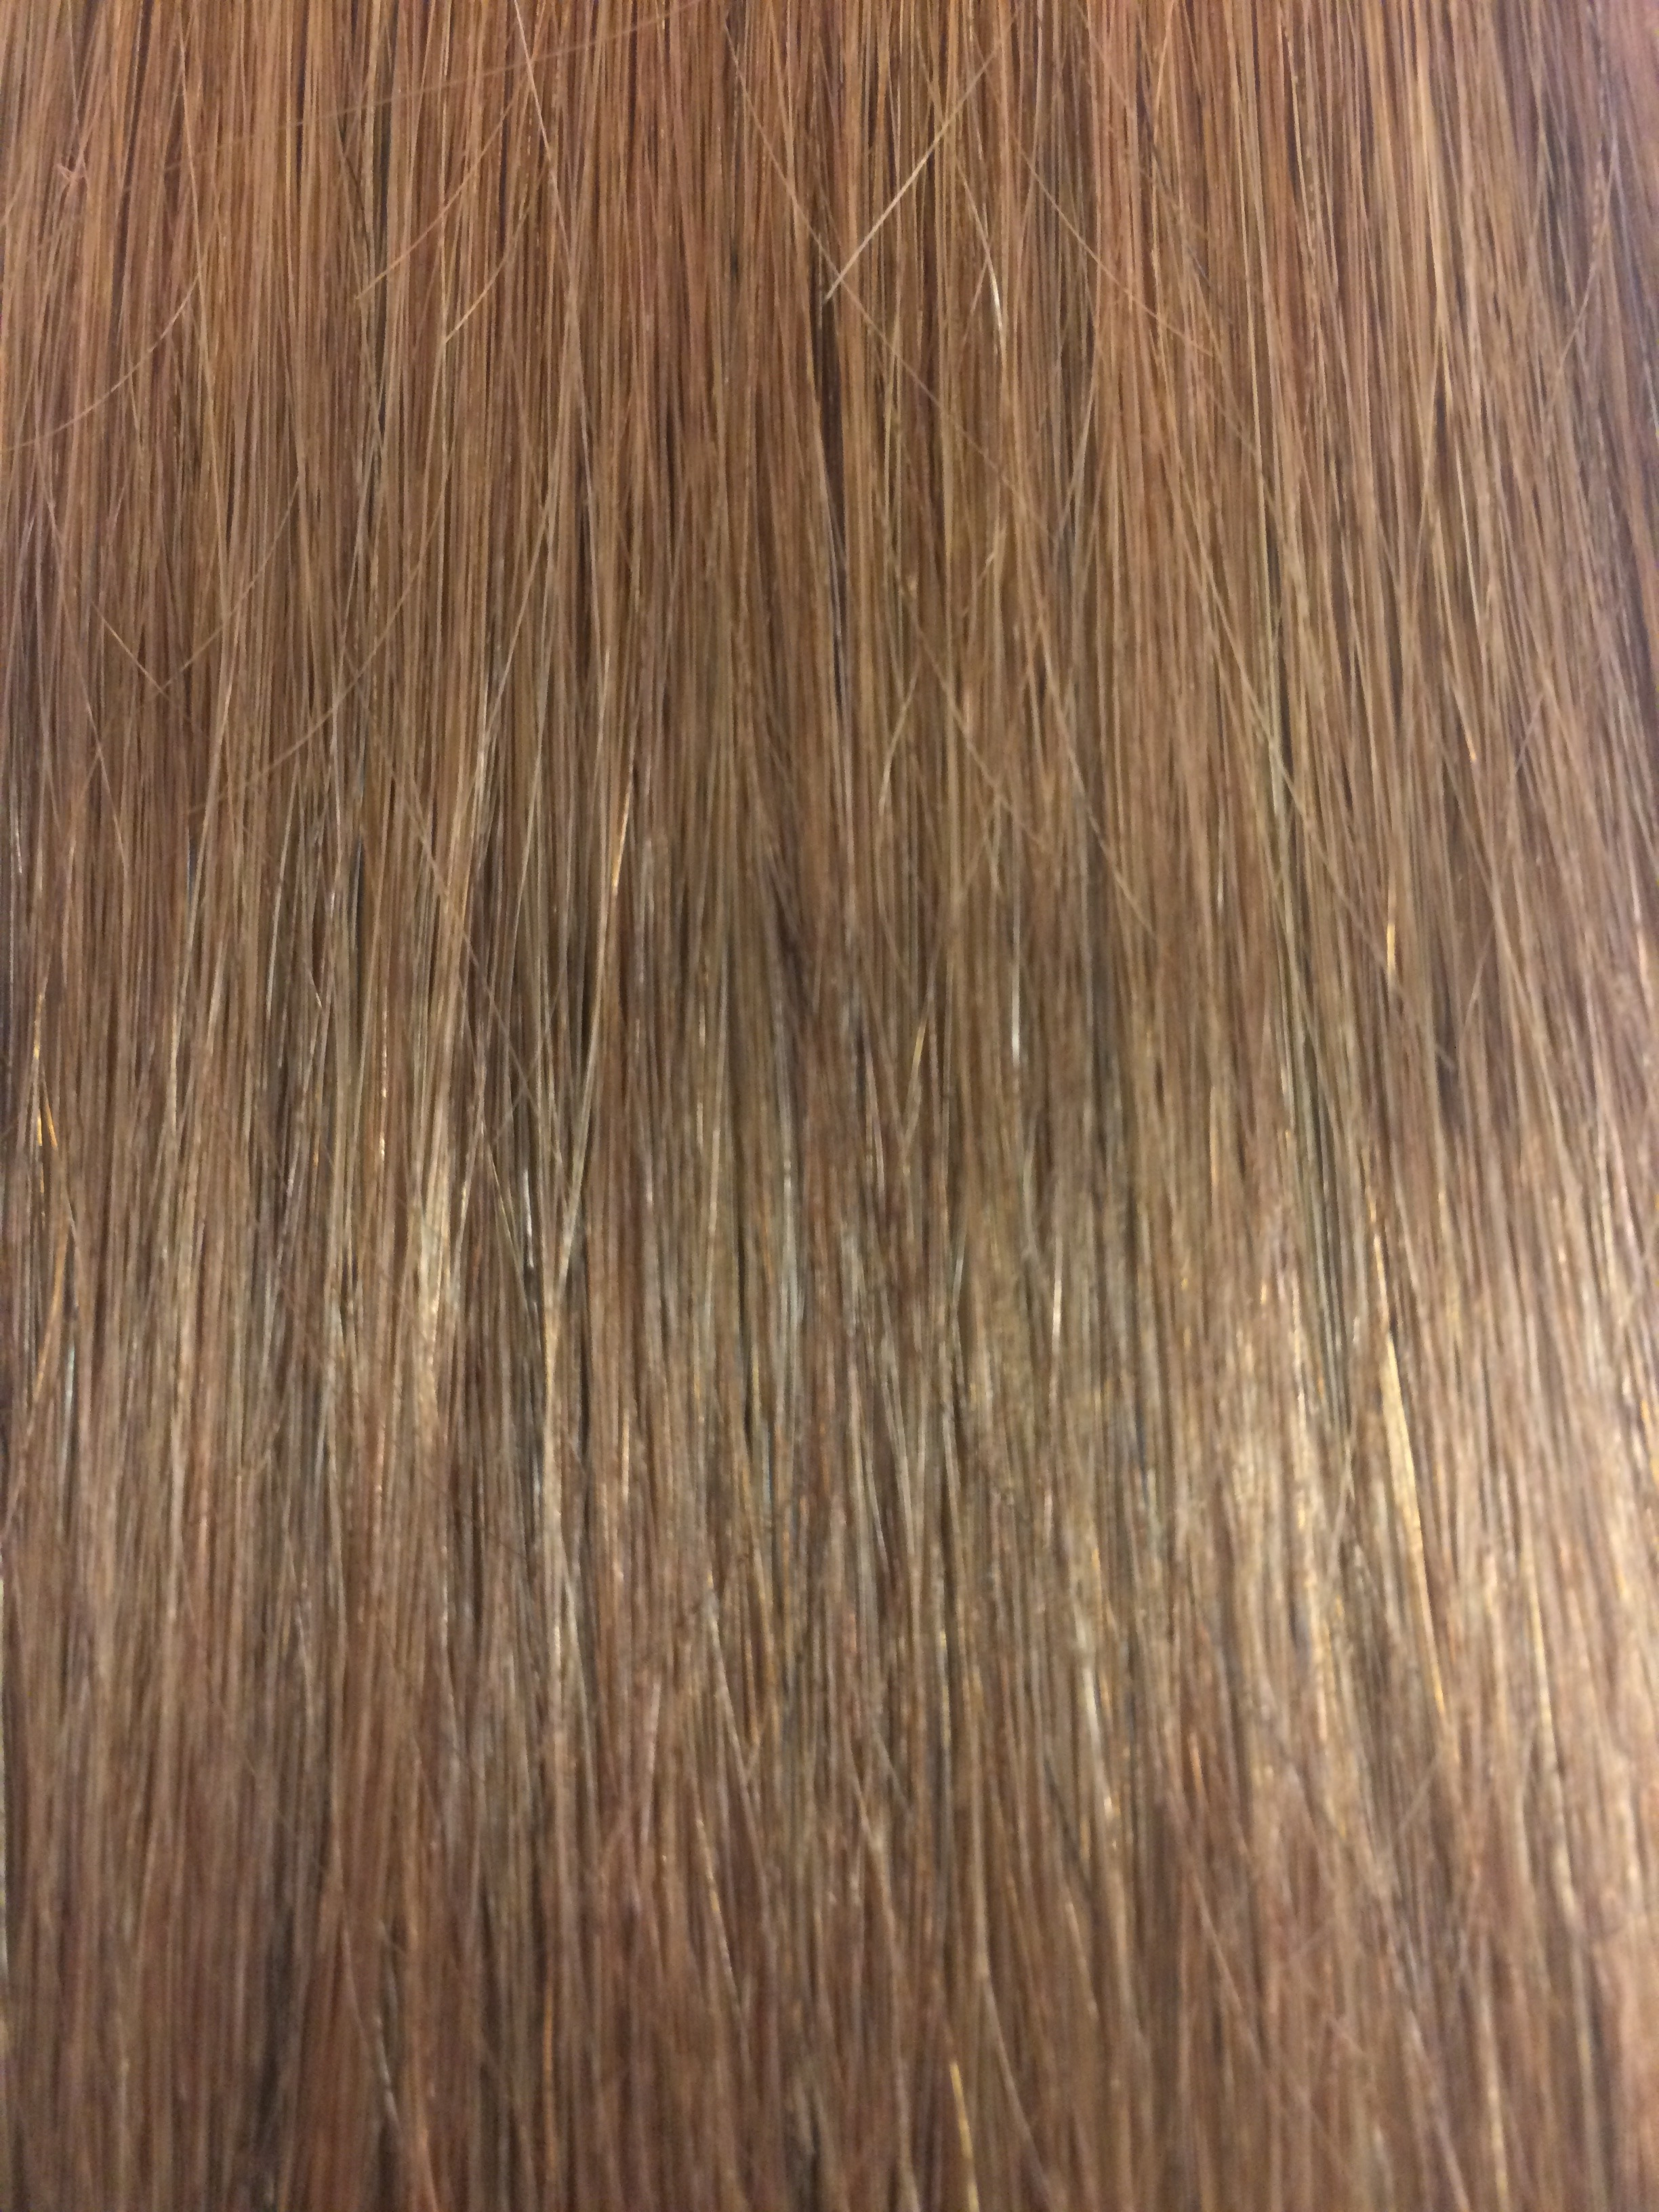 Goddess Remi Silky Hair Extensions 14 18